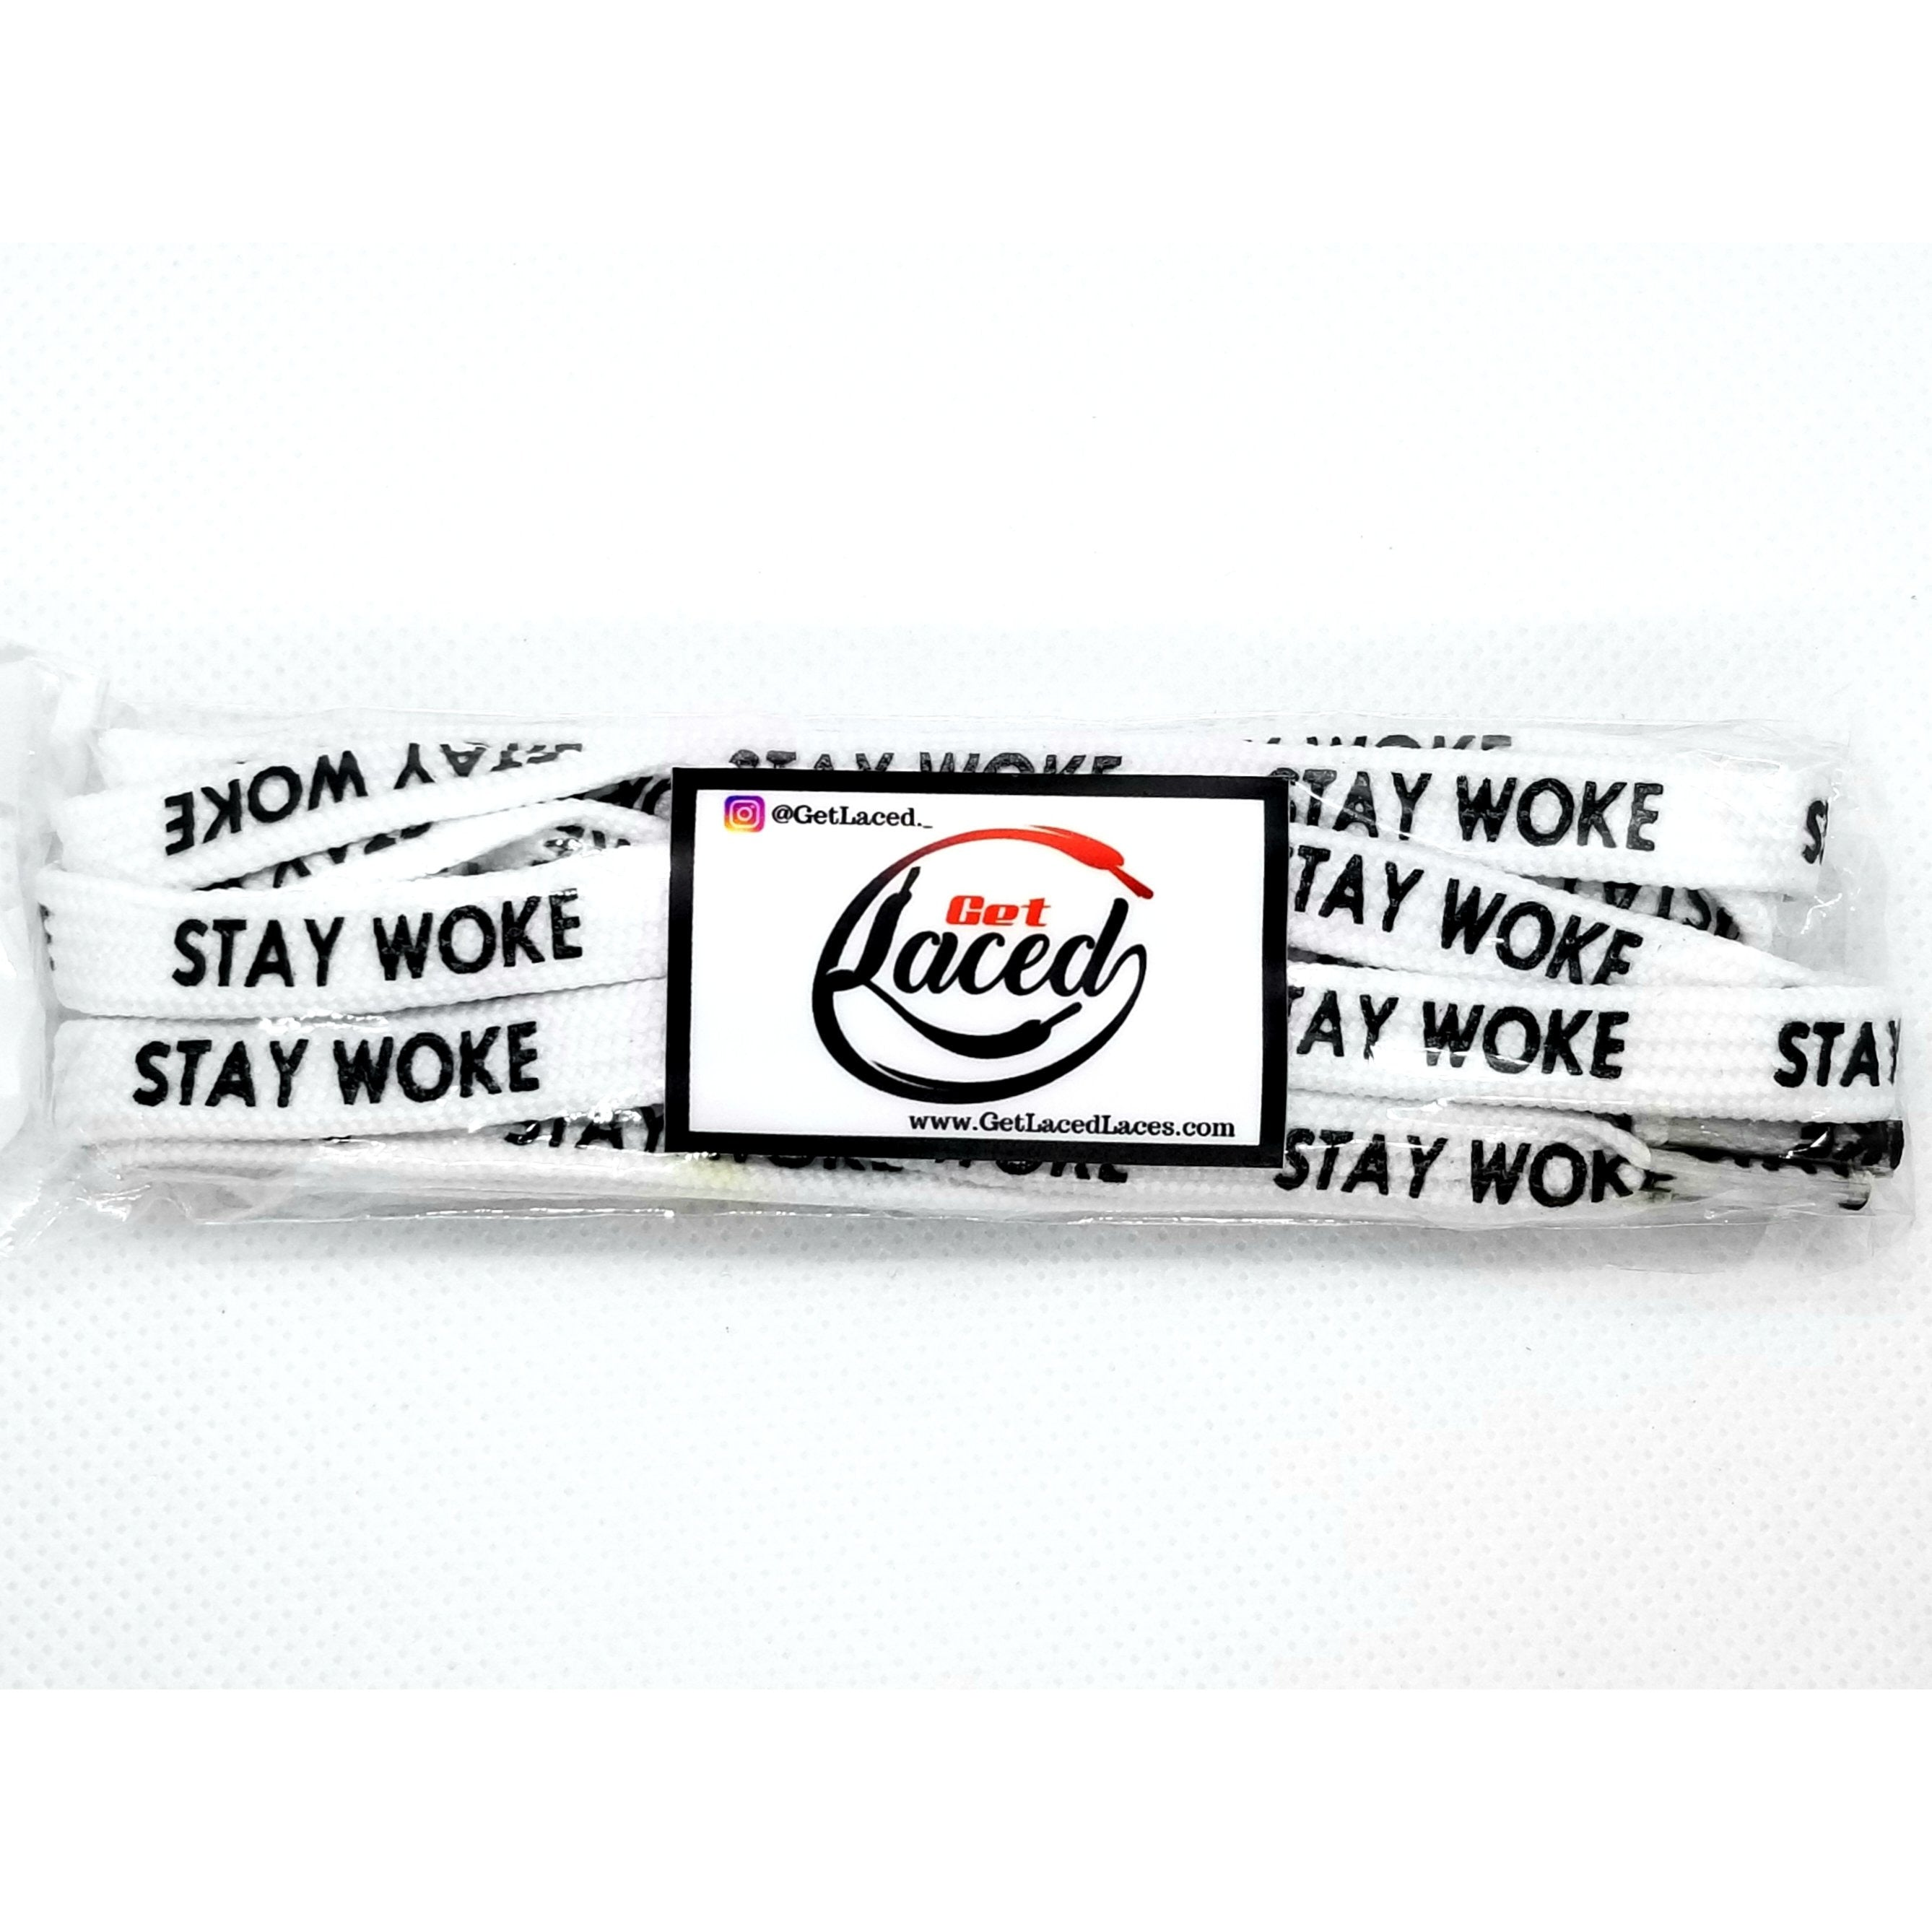 Stay Woke! Laces - Get Laced Shoelaces